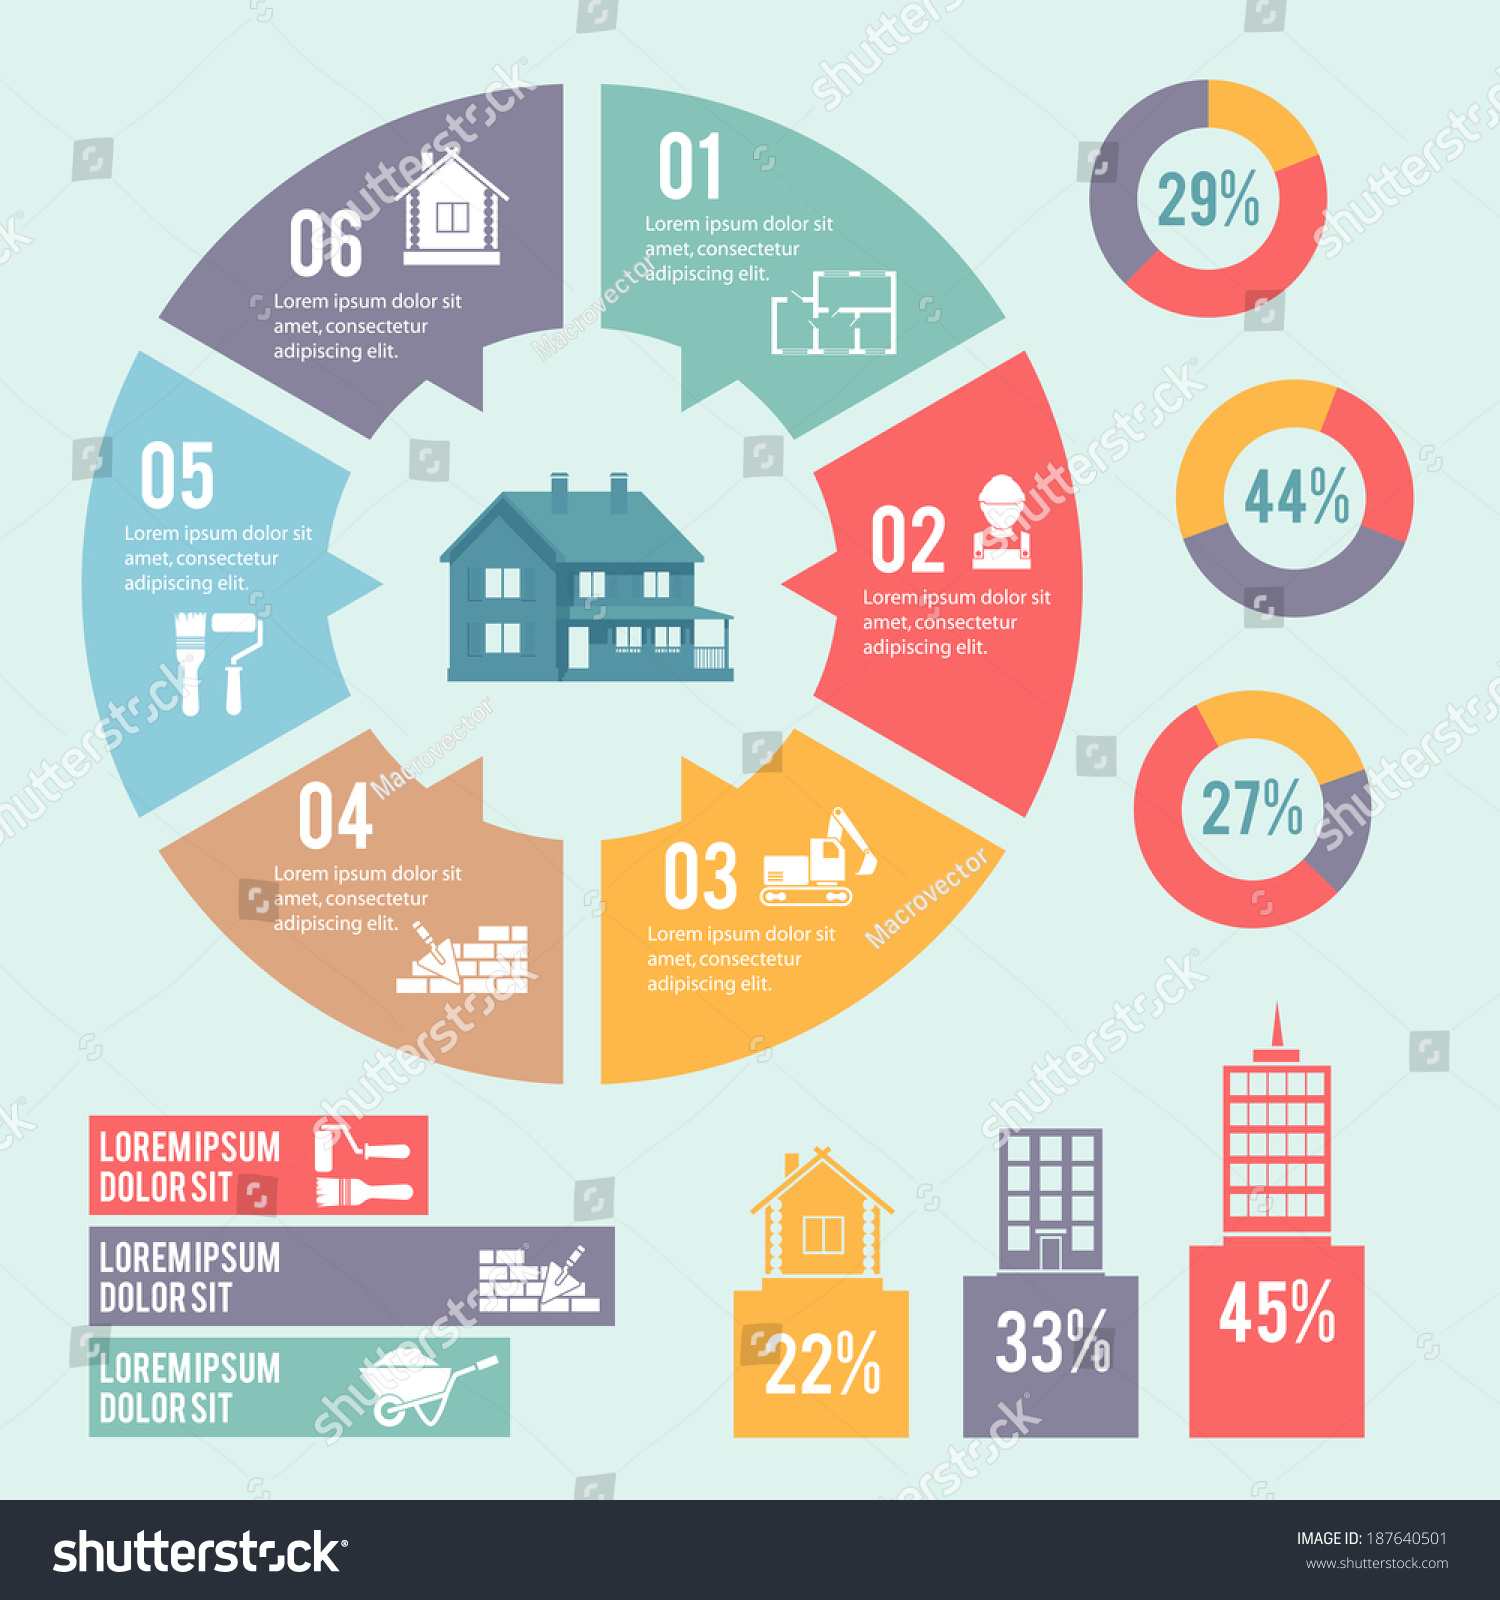 construction engineering building infographic elements circle construction engineering and building infographic elements circle diagram vector illustration